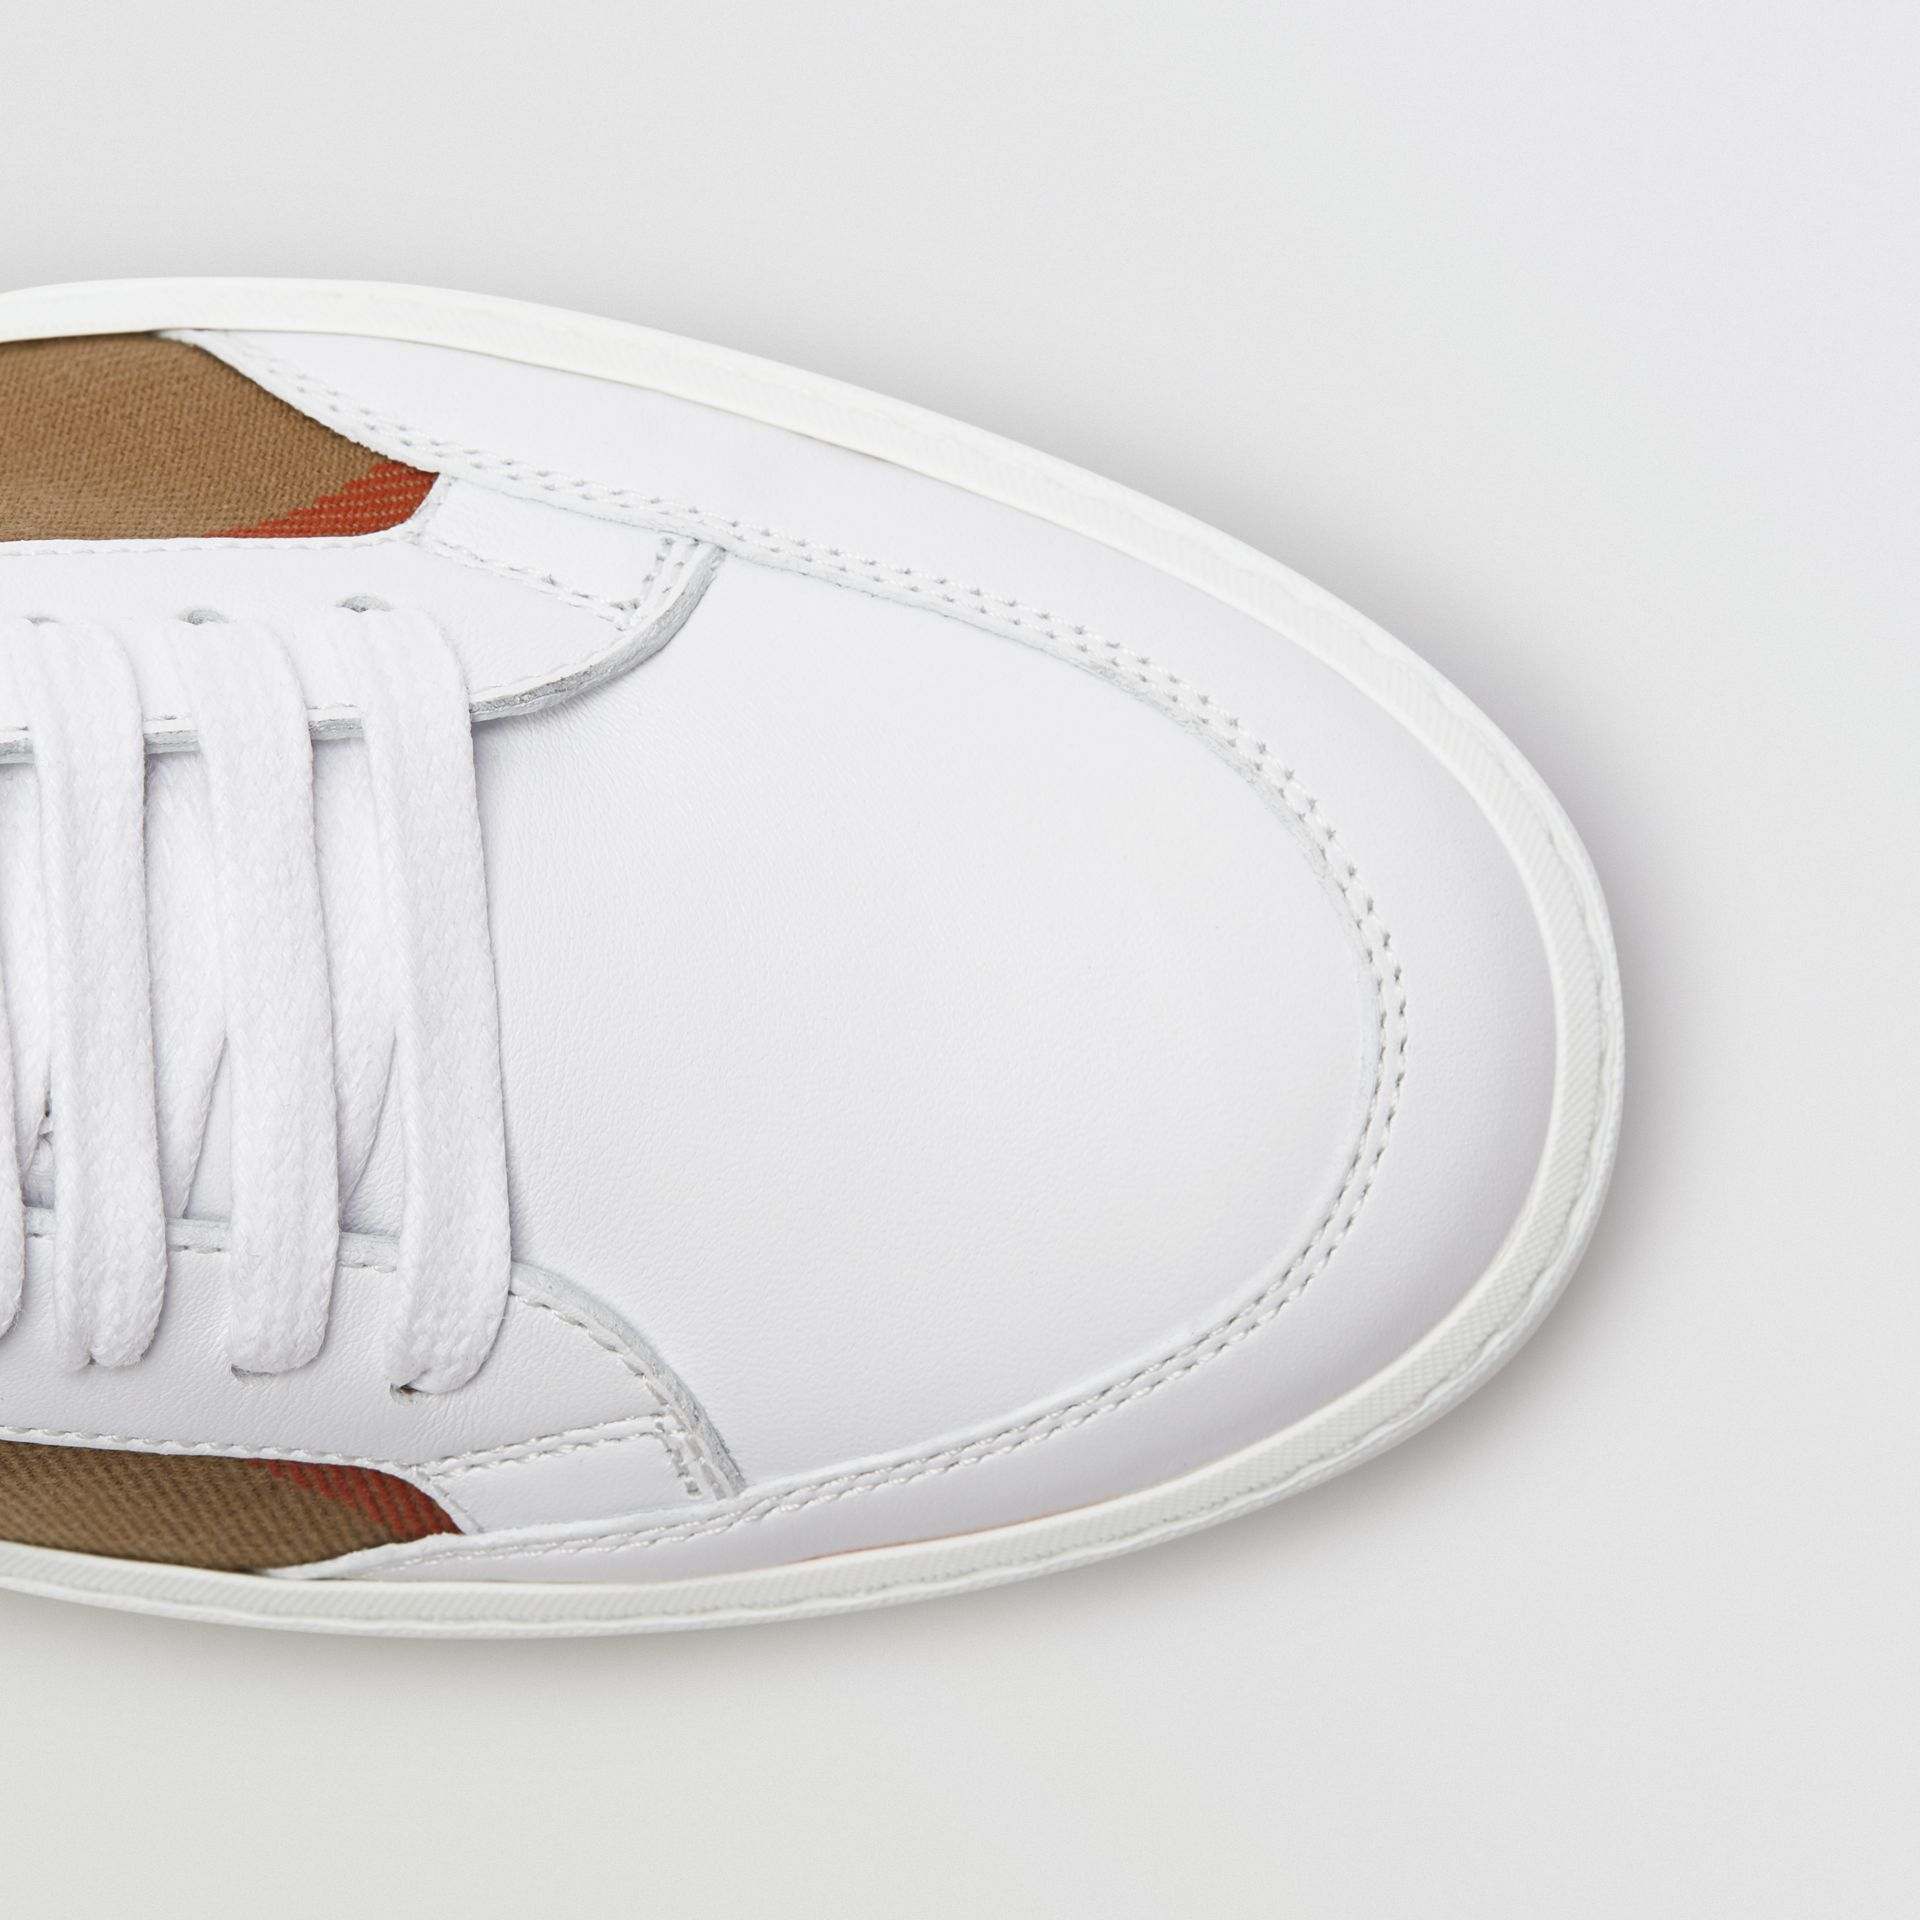 Check Detail Leather Sneakers in House Check/ Optic White - Women | Burberry - gallery image 1